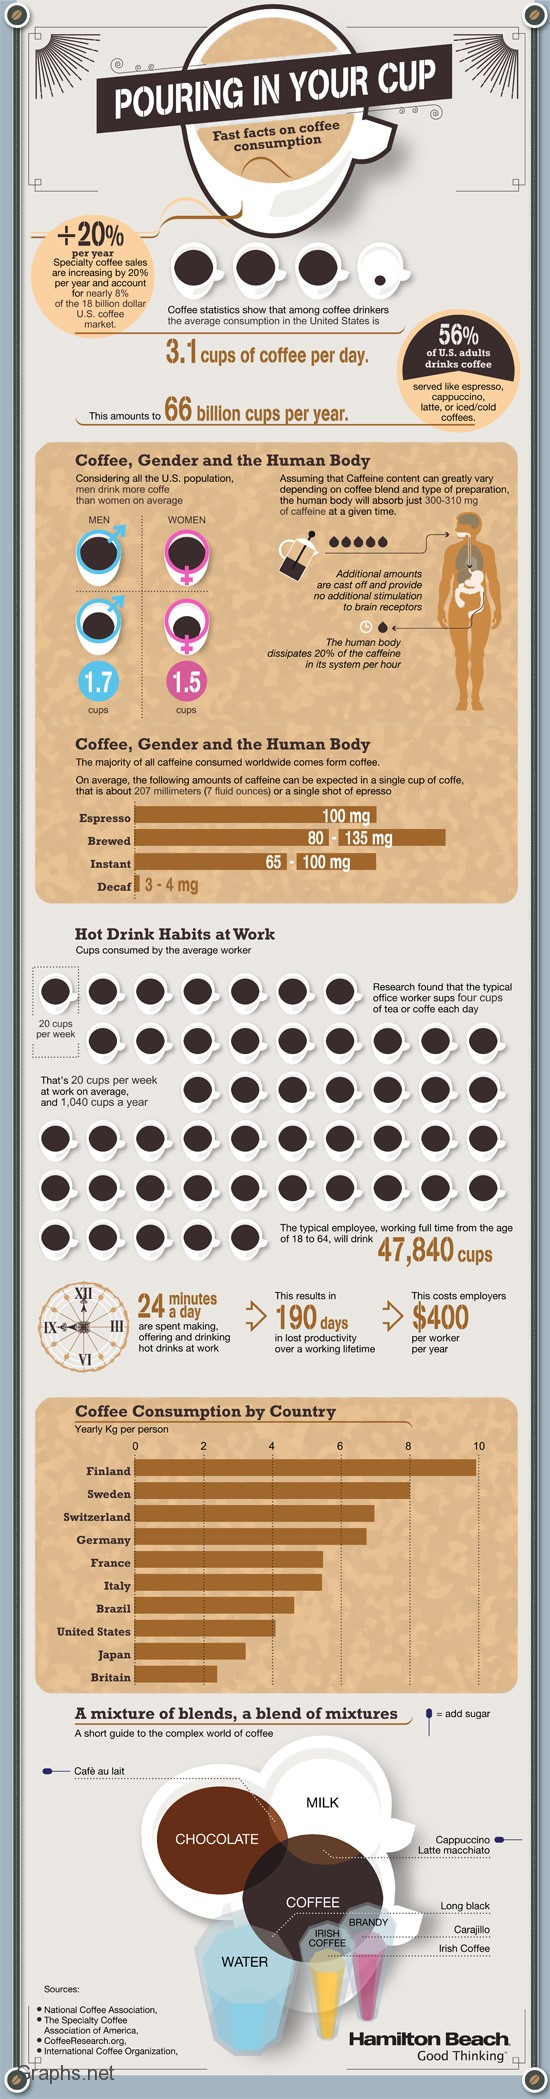 Coffee consumption facts